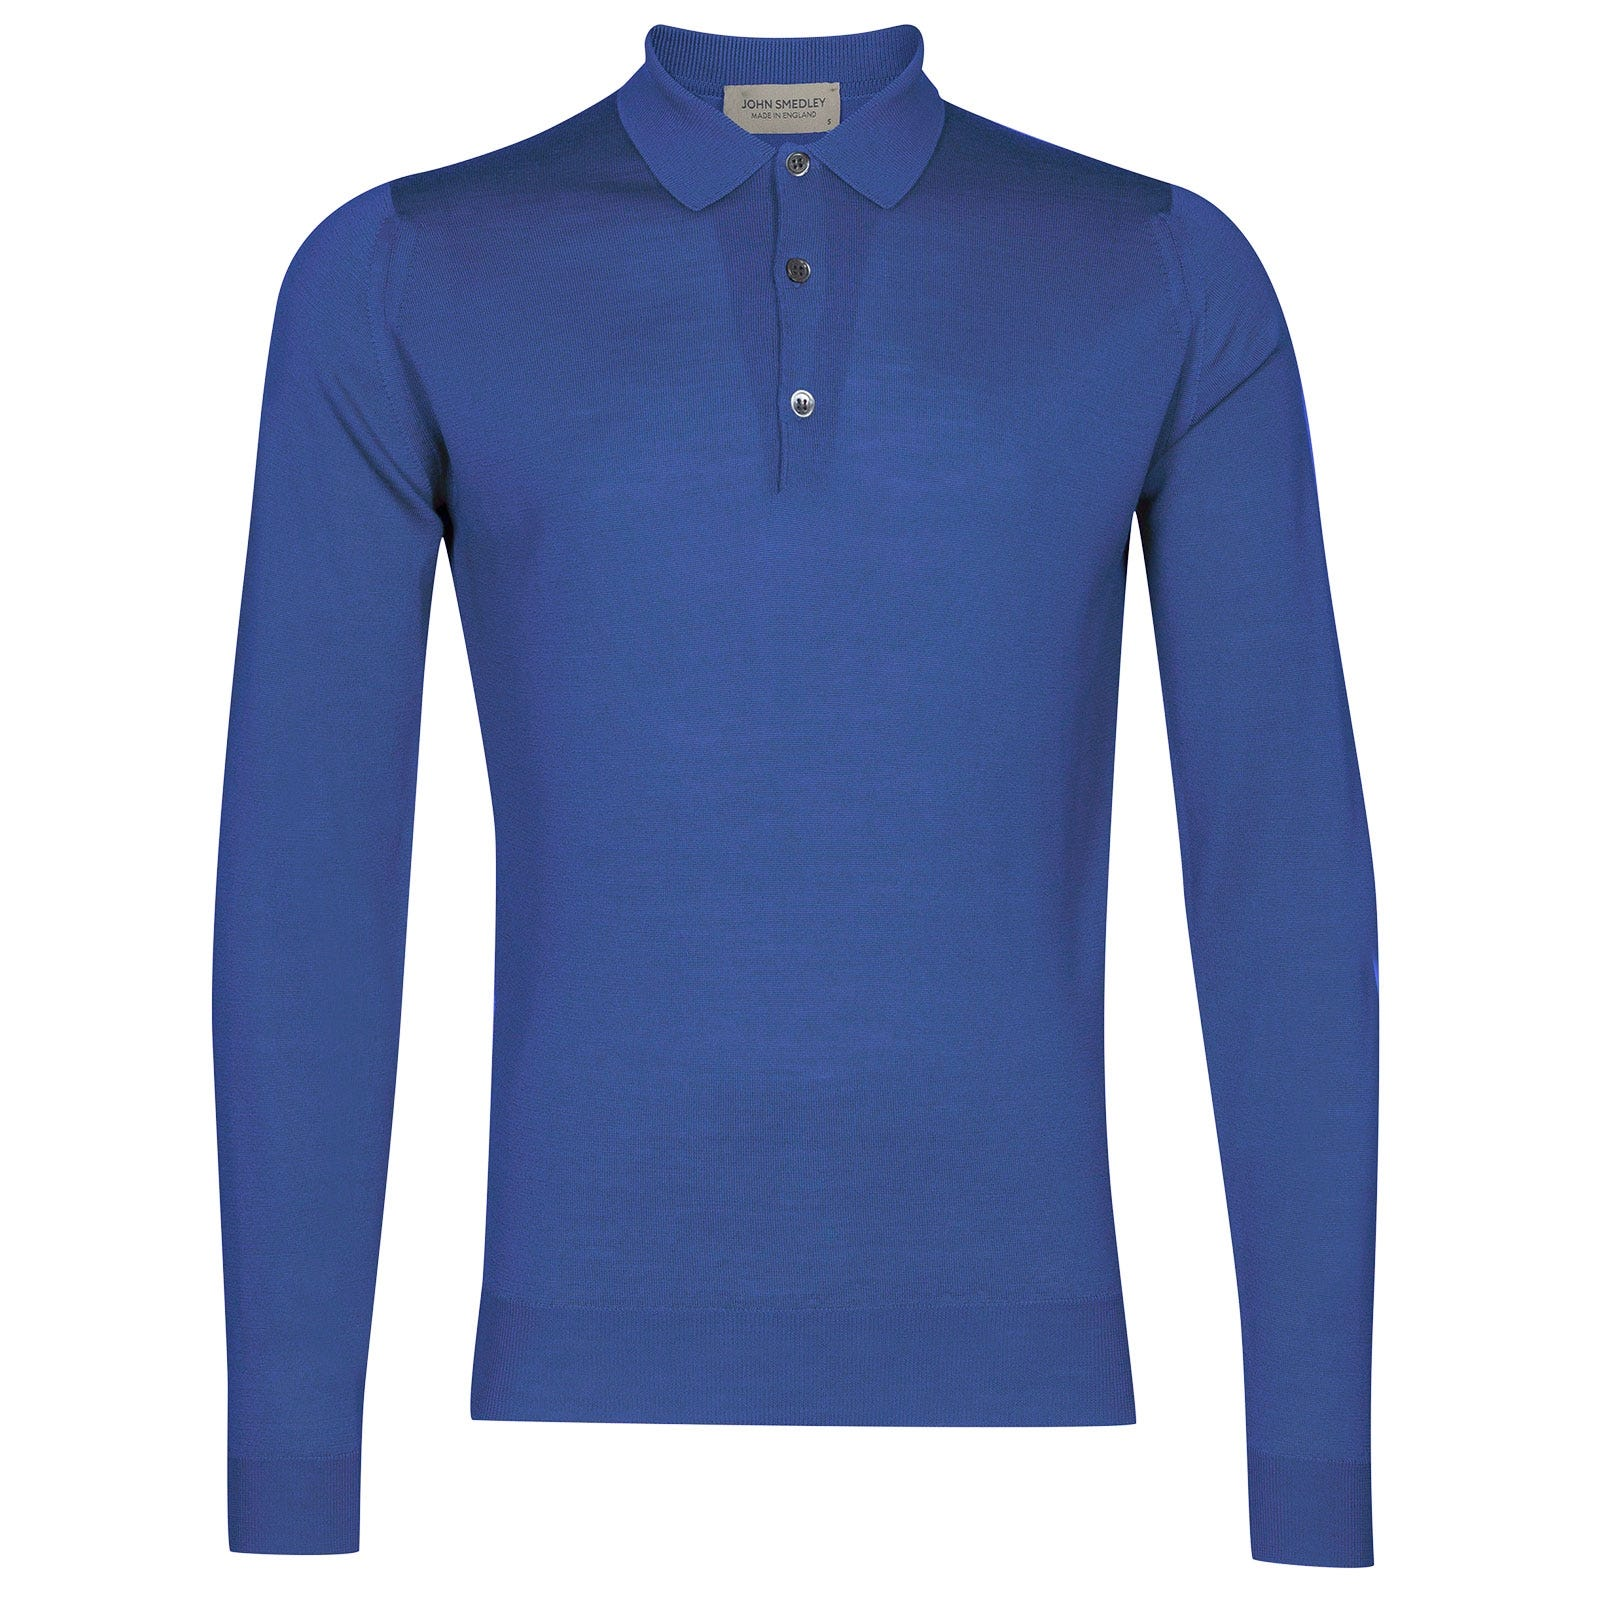 John Smedley Belper Merino Wool Shirt in Chambray Blue-L